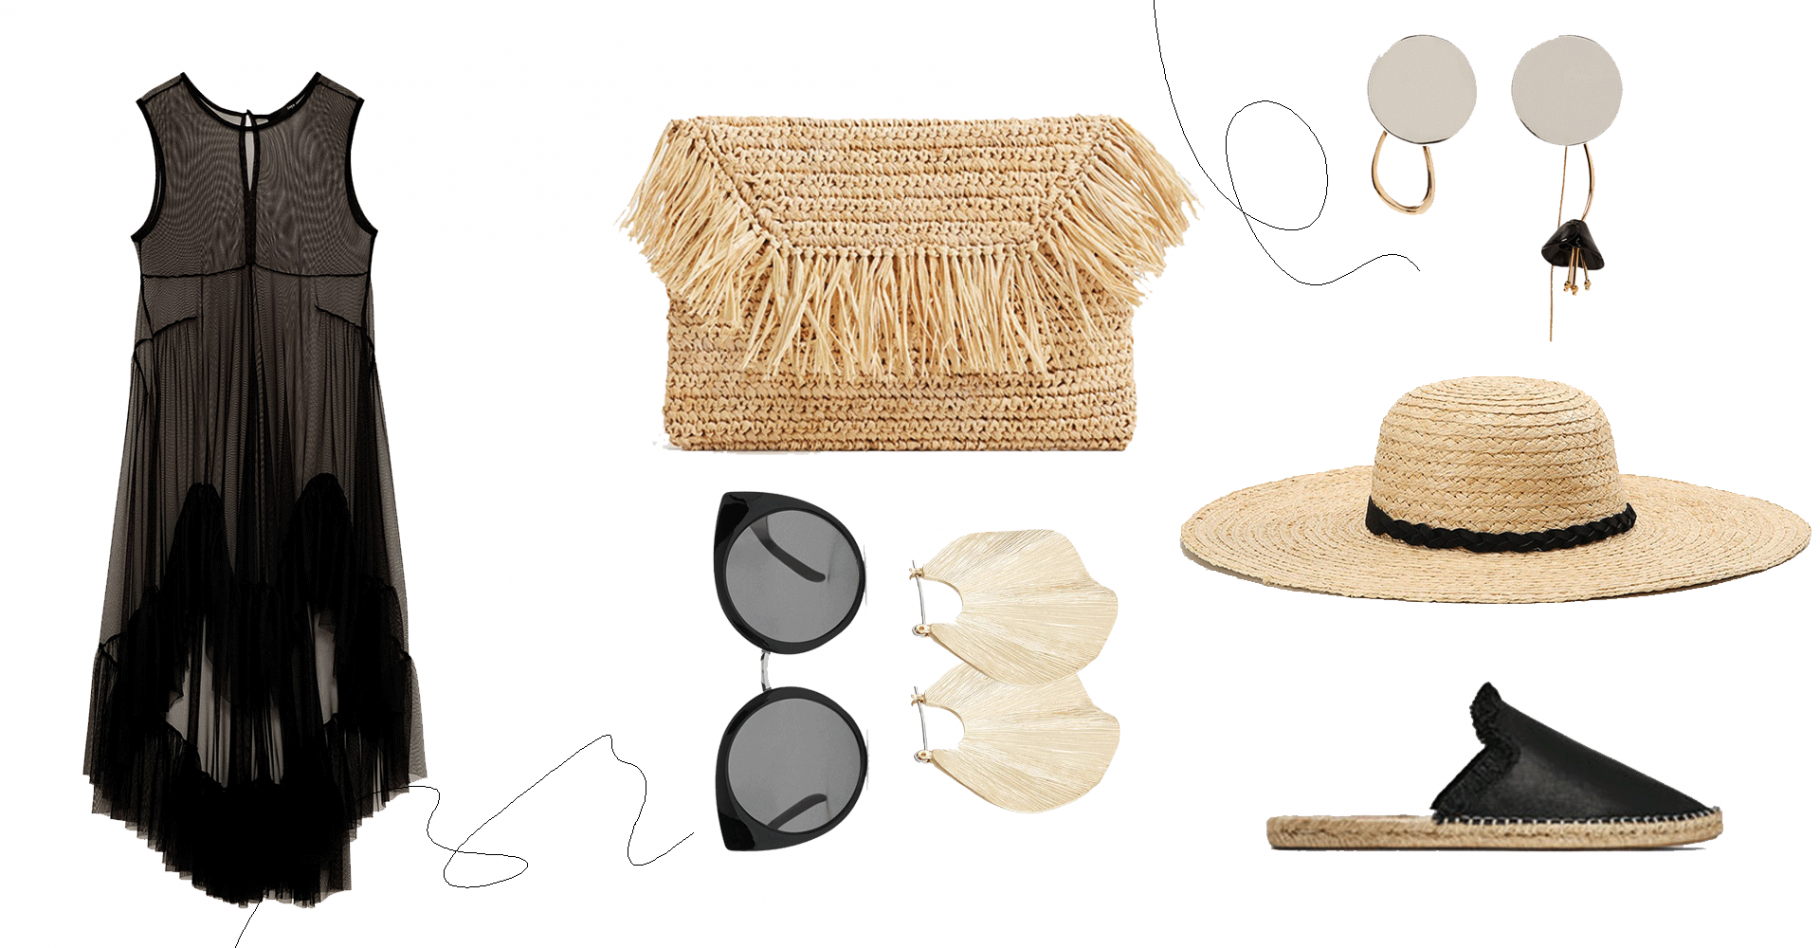 THE STRAW BAG